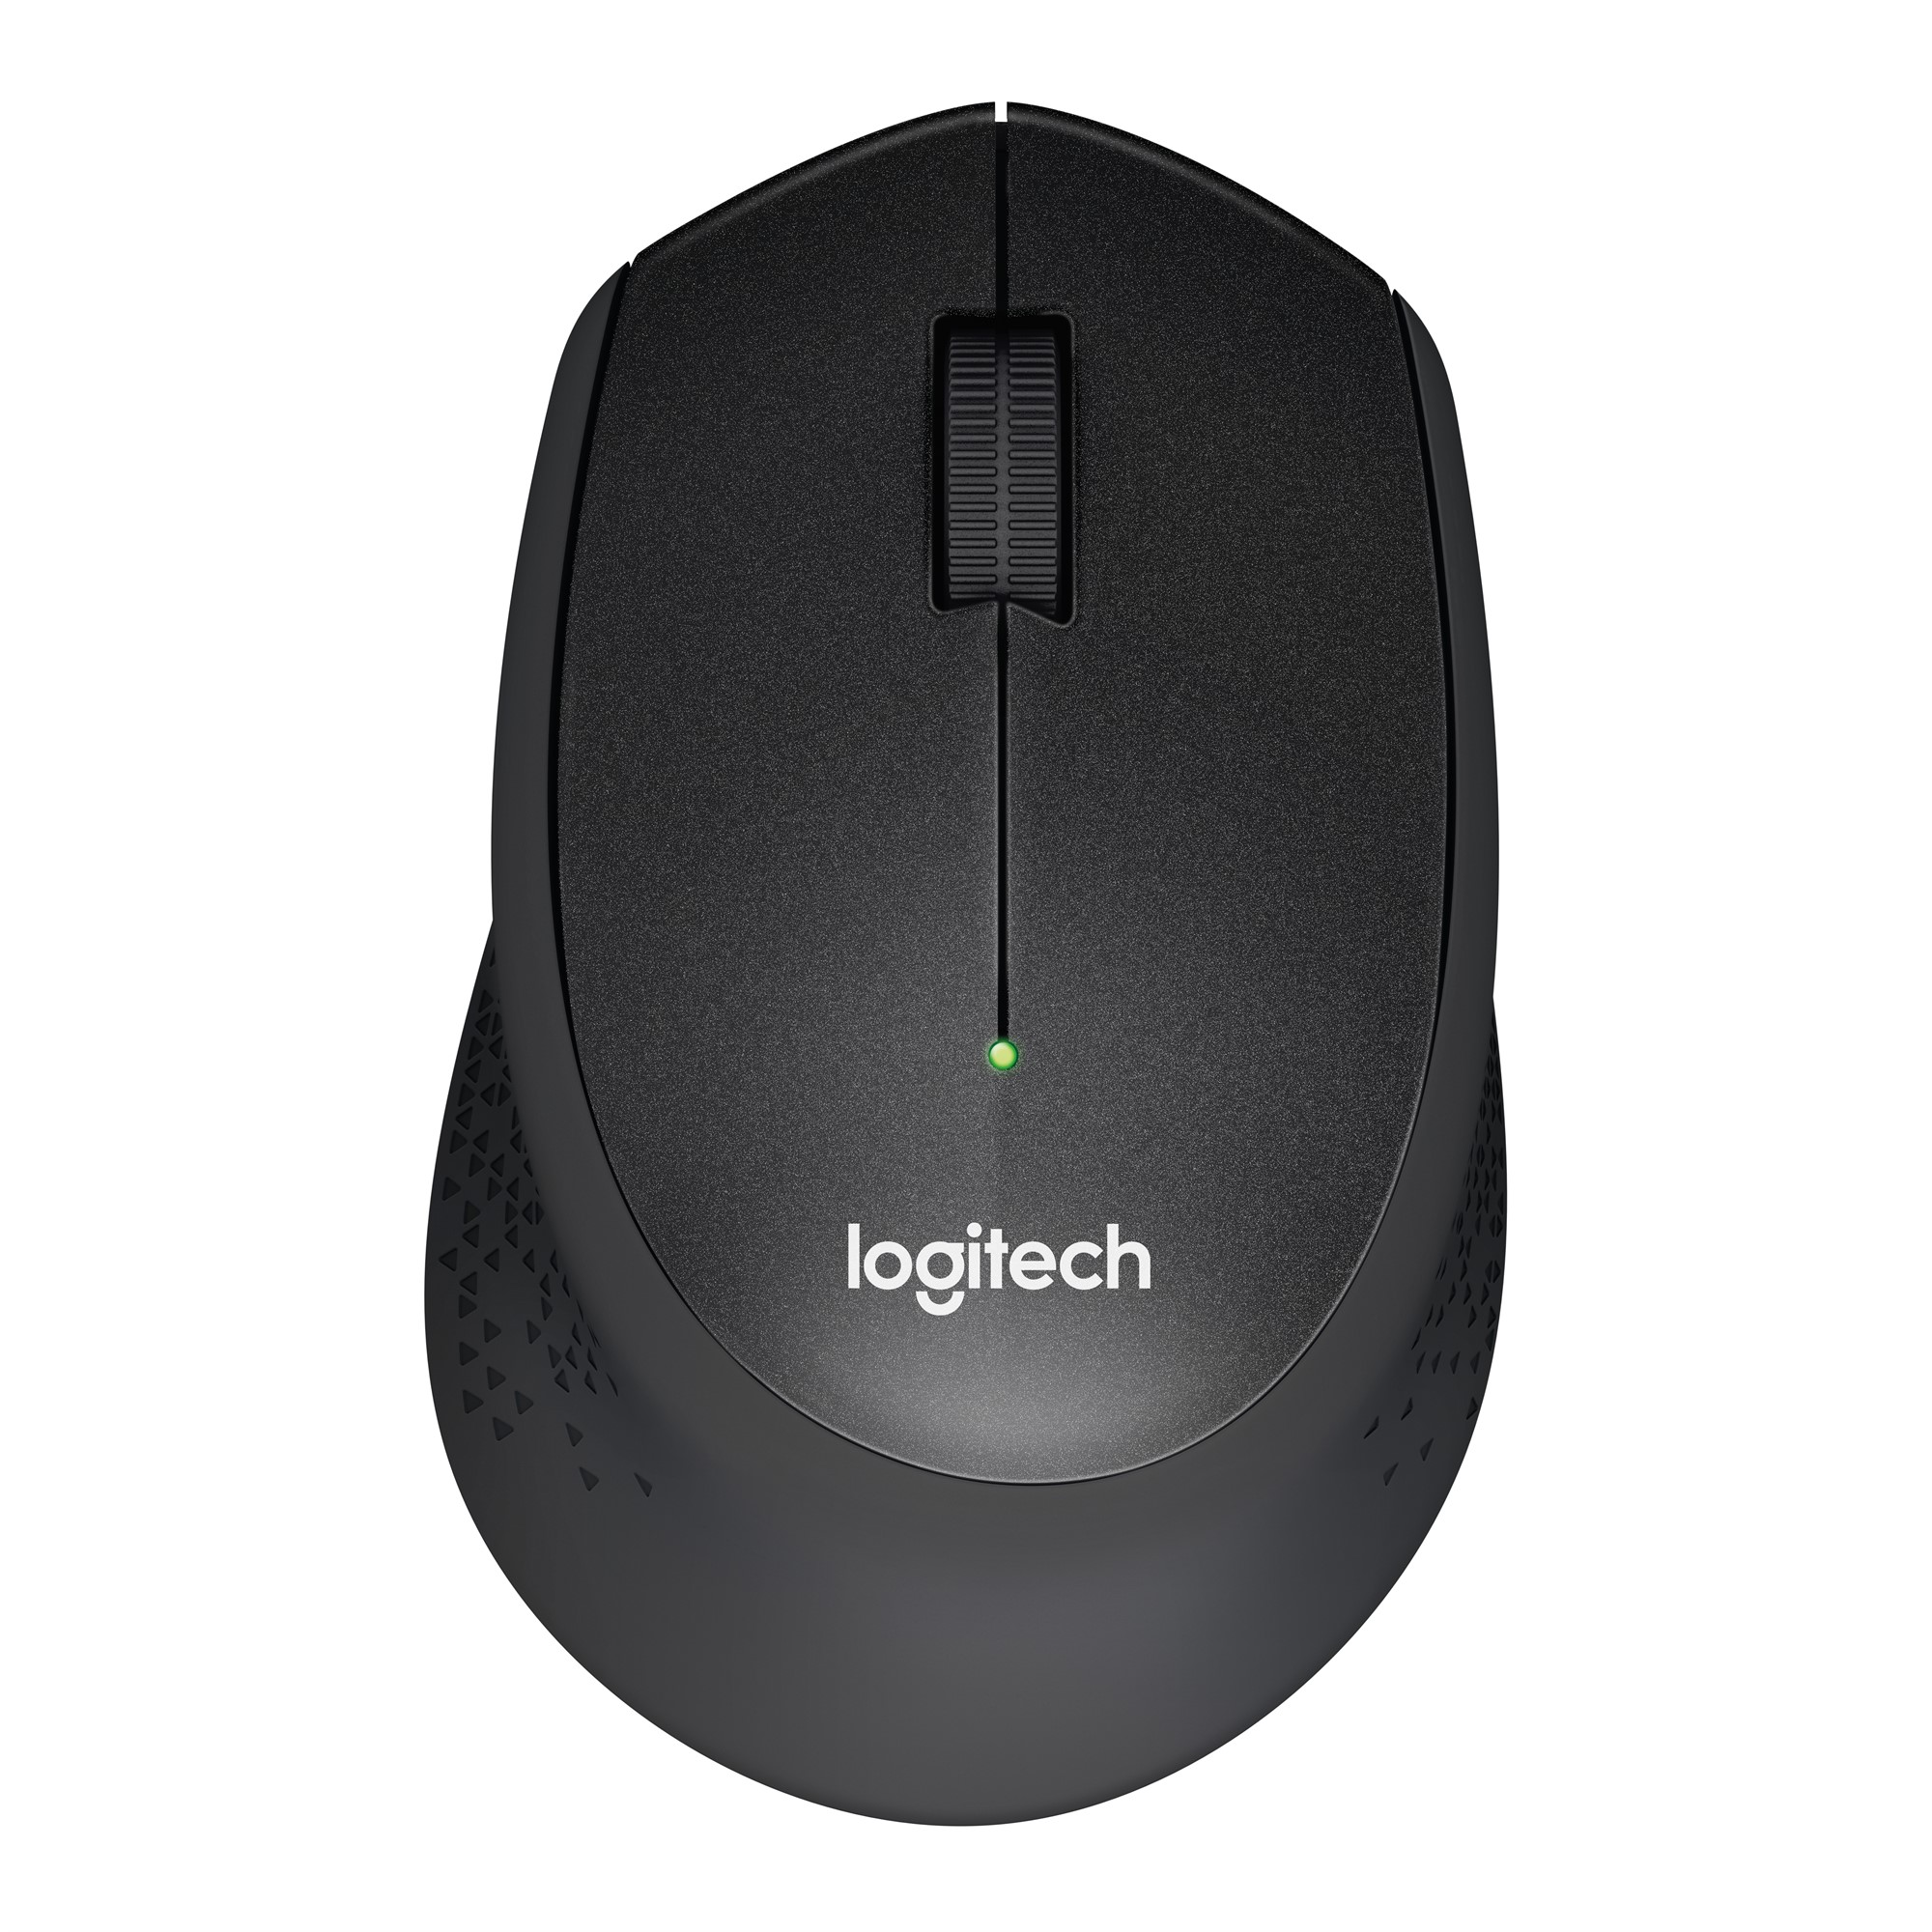 LOGITECH M330 RF WIRELESS MECHANICAL 1000DPI RIGHT-HAND BLACK MICE